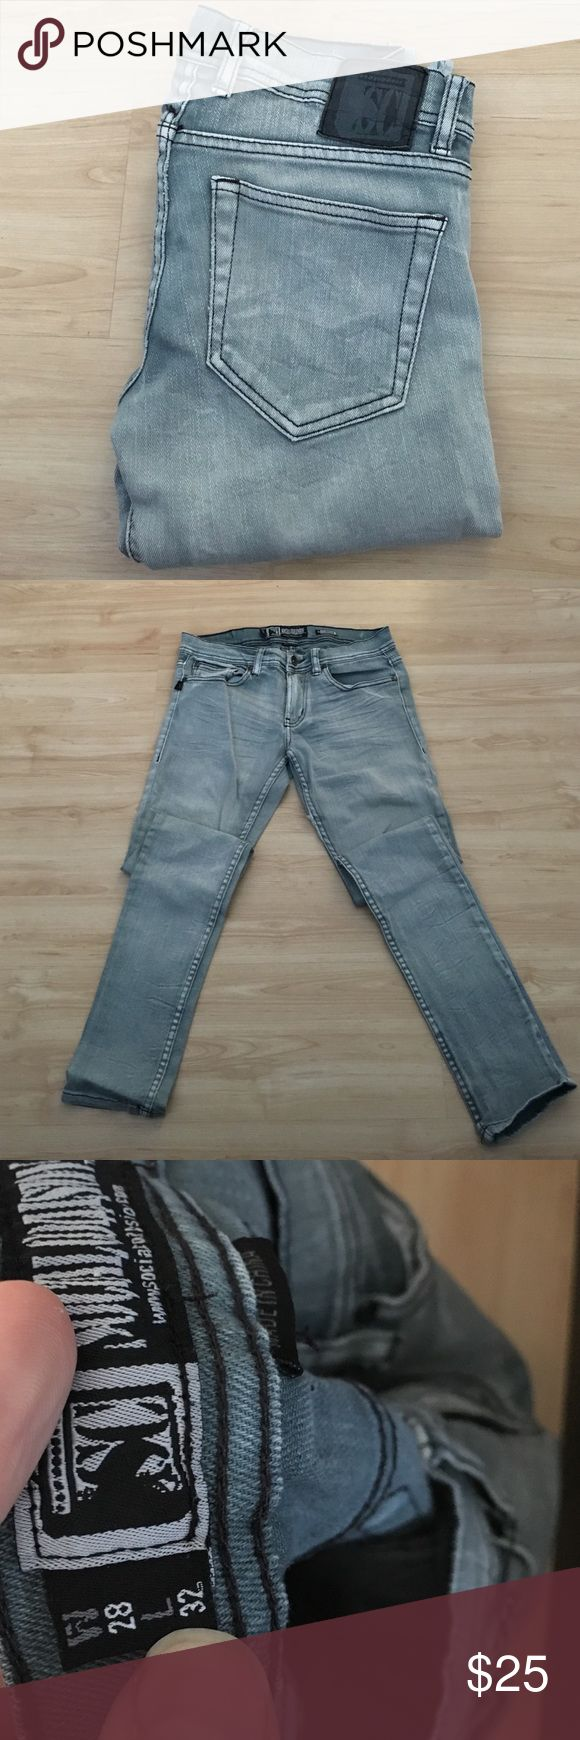 Urban outfitters men's skinny jeans 28x32 Urban outfitters men's gray skinny jeans 28x32 👖 Urban Outfitters Jeans Skinny